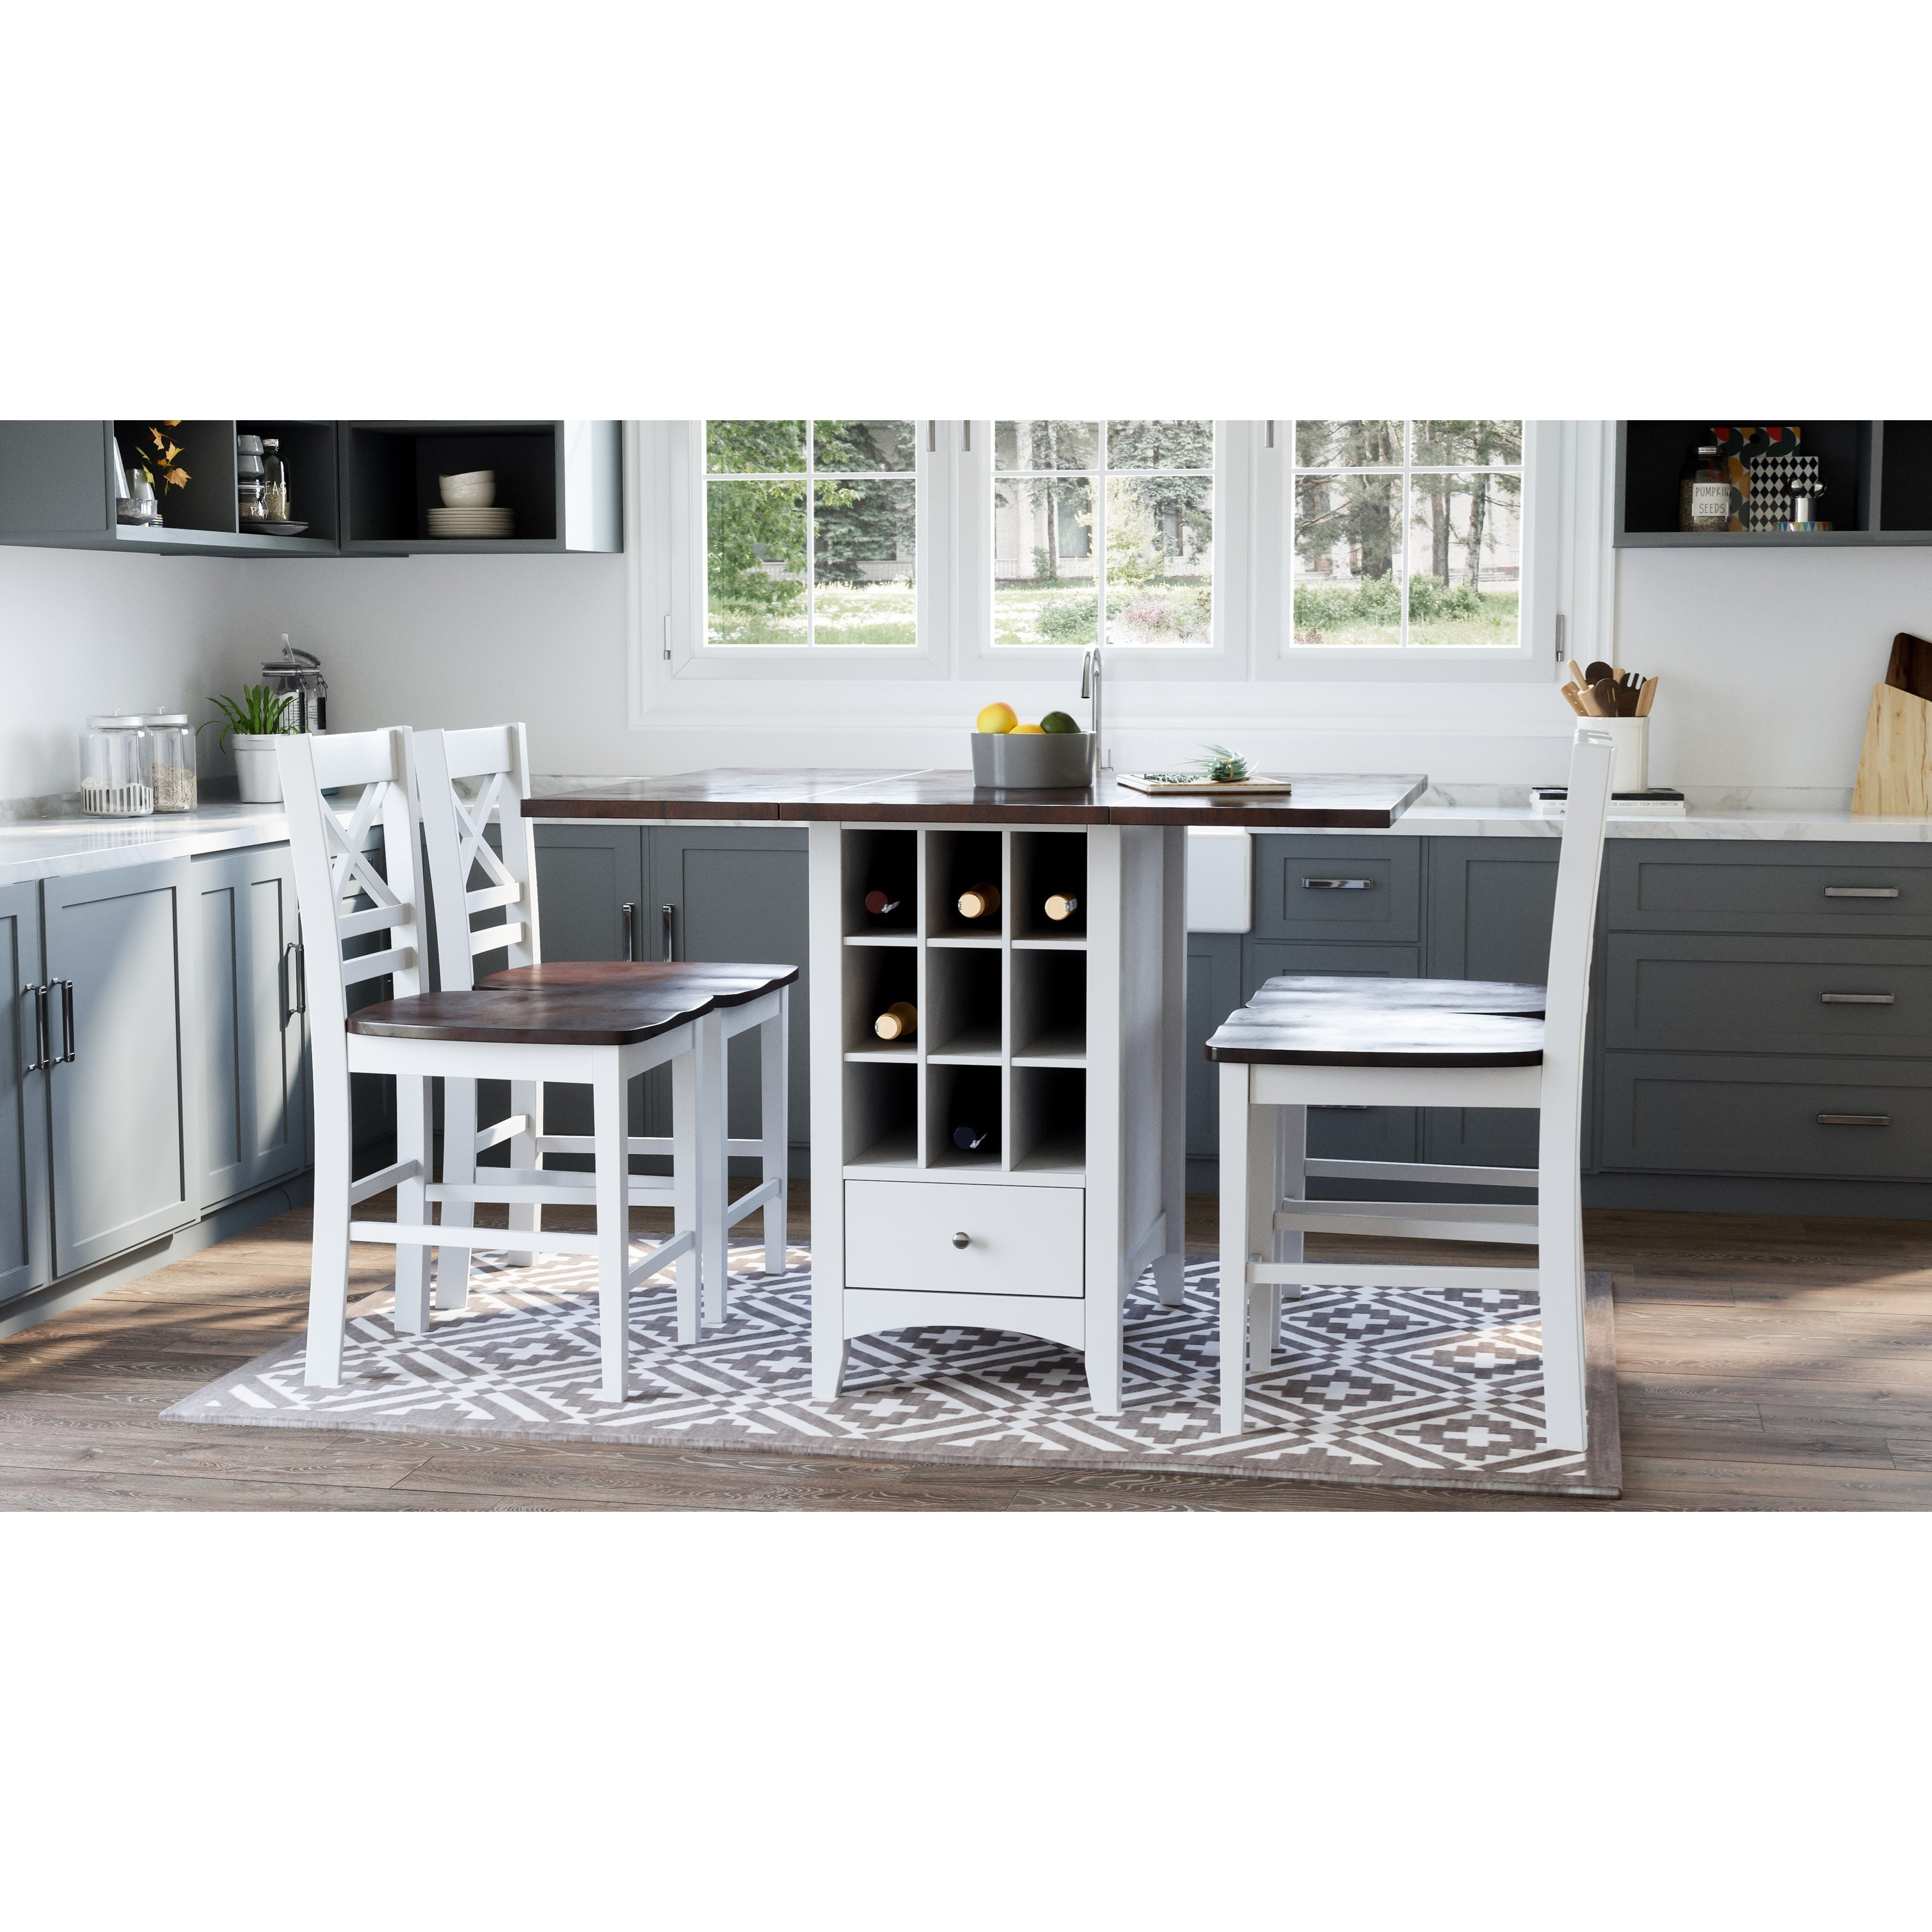 Asbury Park 5-Piece Counter Height Table and Stool Set by Jofran at Zak's Home